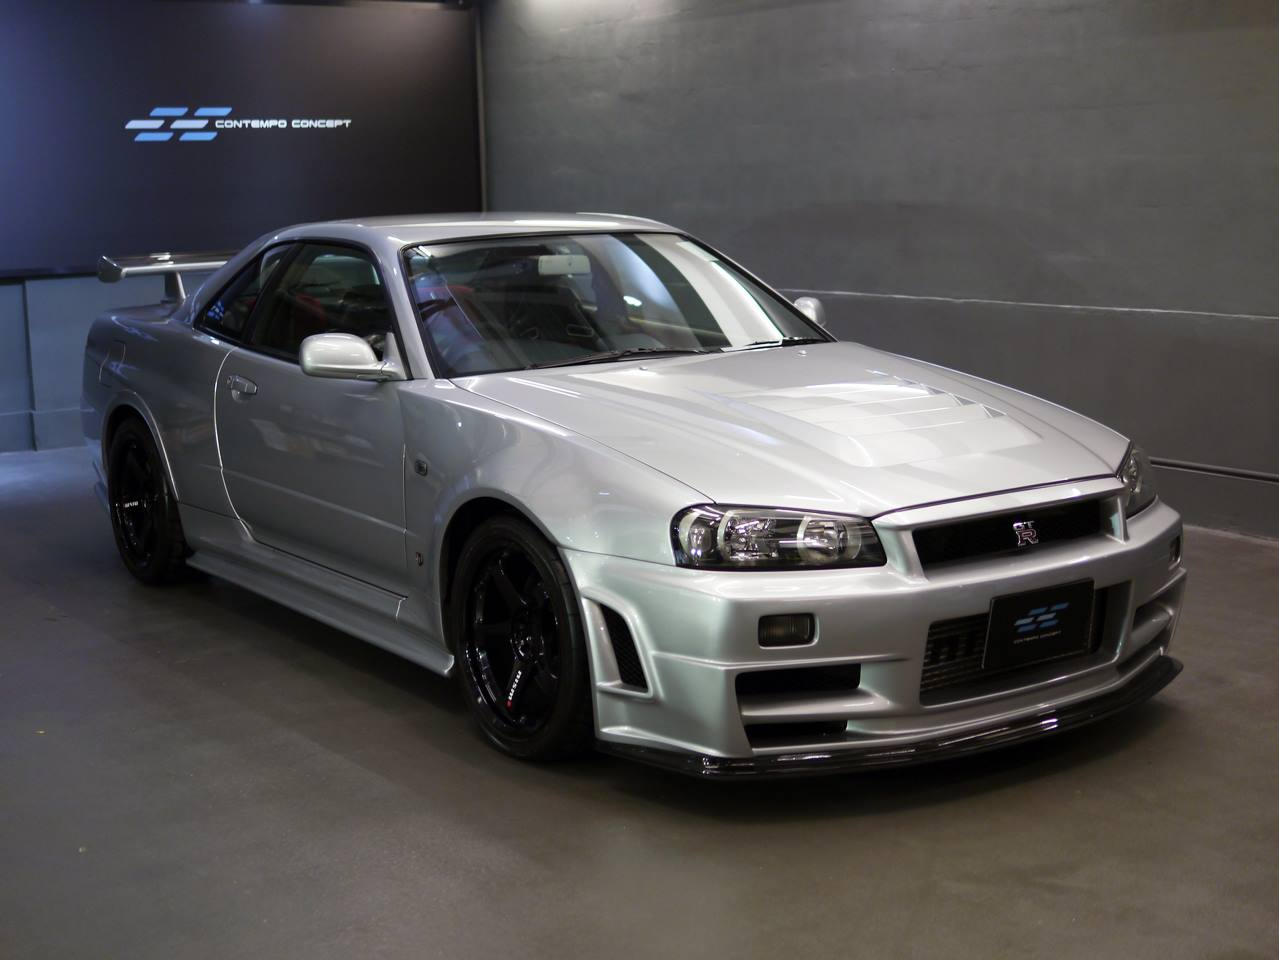 foto divers nissan skyline r34 z tune occasion skyline z tune hk 00001. Black Bedroom Furniture Sets. Home Design Ideas